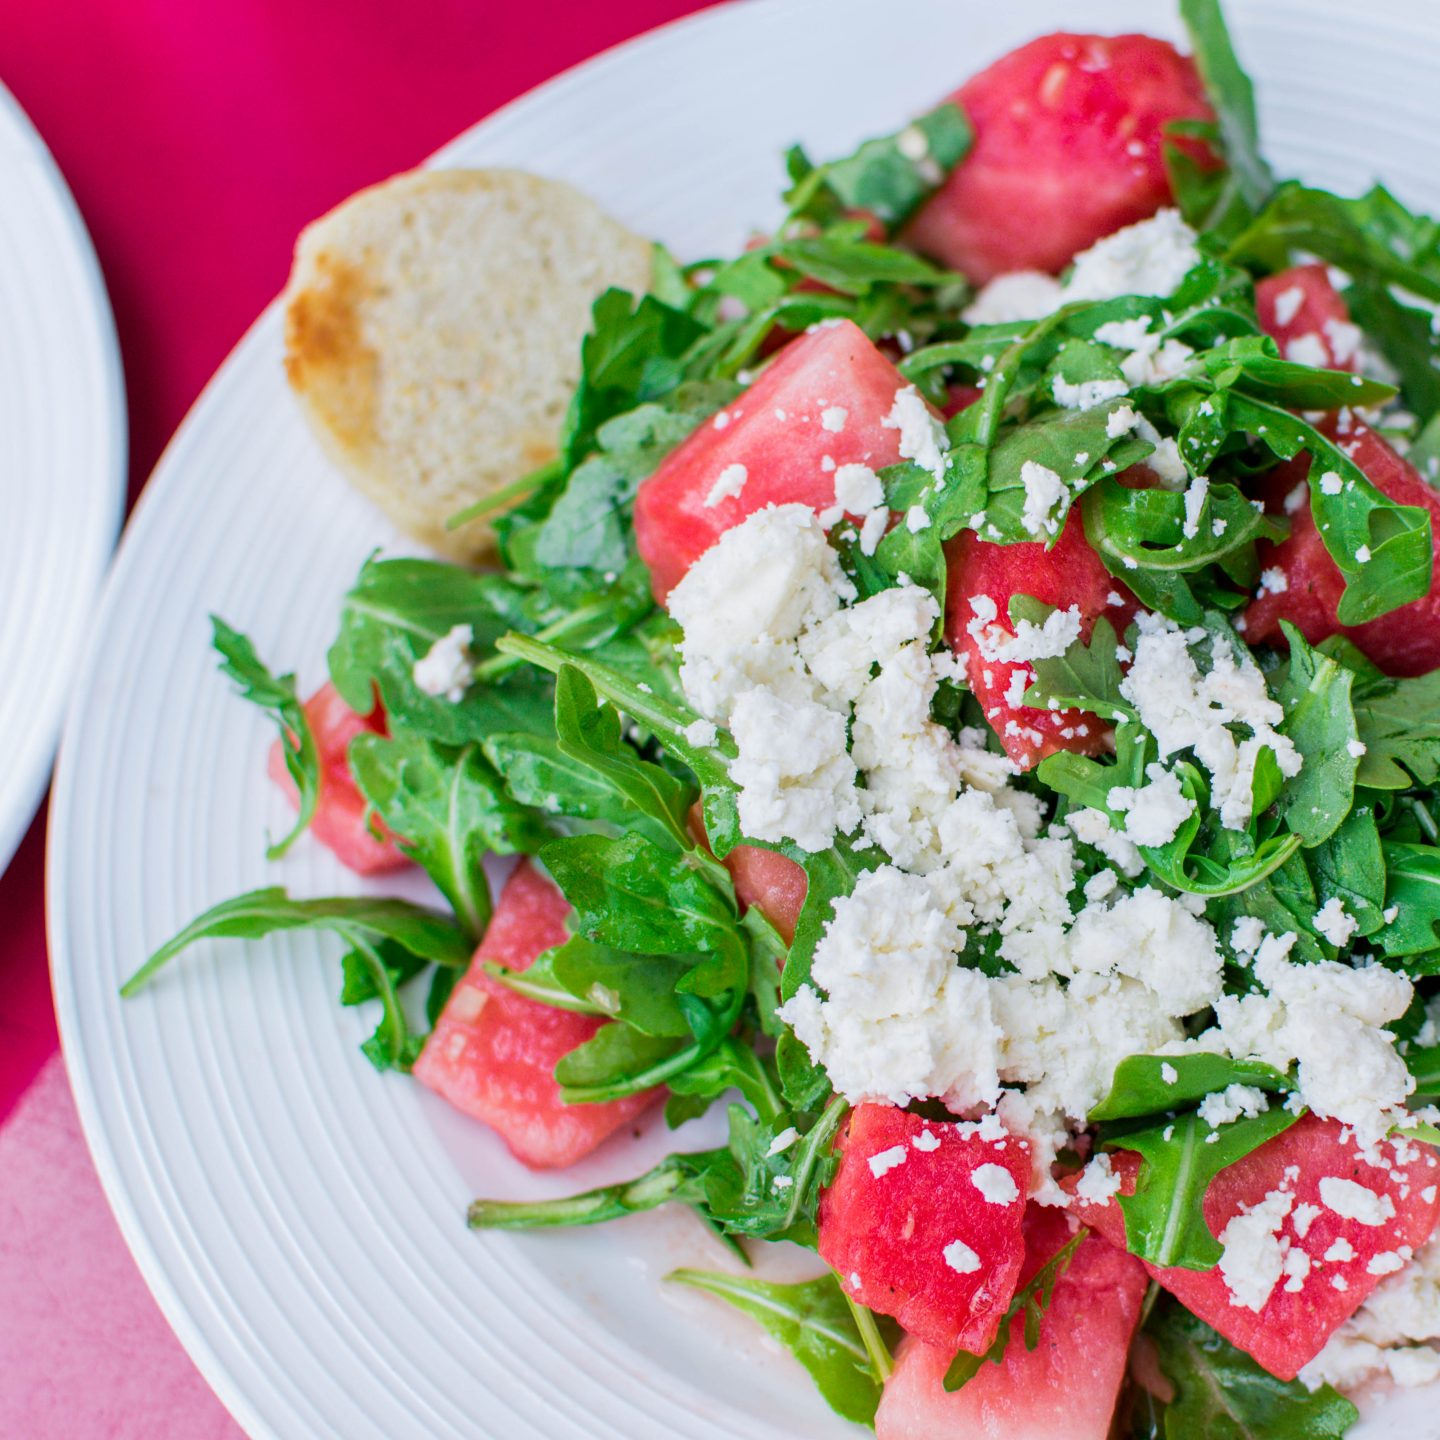 Lale's Feta Cheese and Watermelon Salad